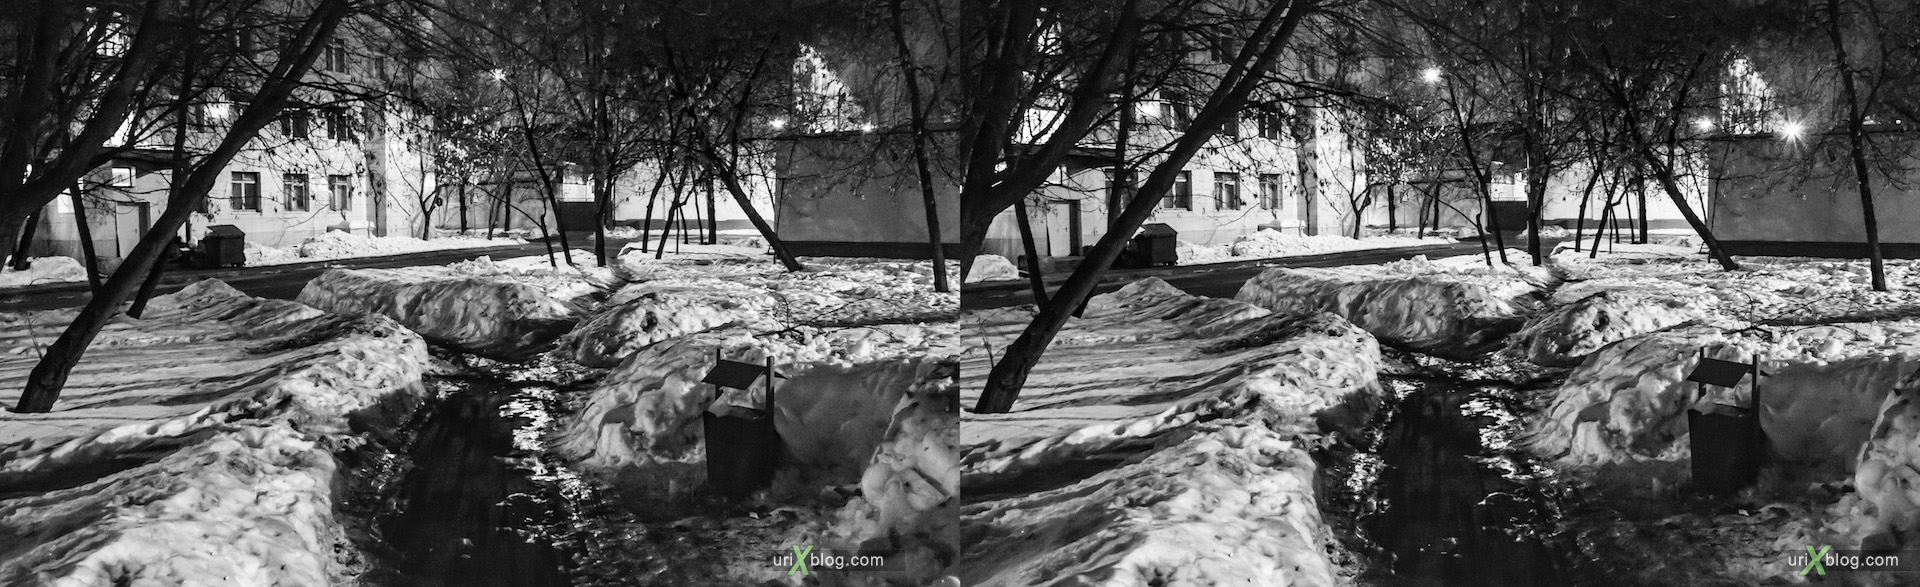 2013, Buzheninova street, night, evening, Moscow, Russia, winter, snow, dust, lantern, tree, building, 3D, stereo pair, cross-eyed, crossview, cross view stereo pair, stereoscopic